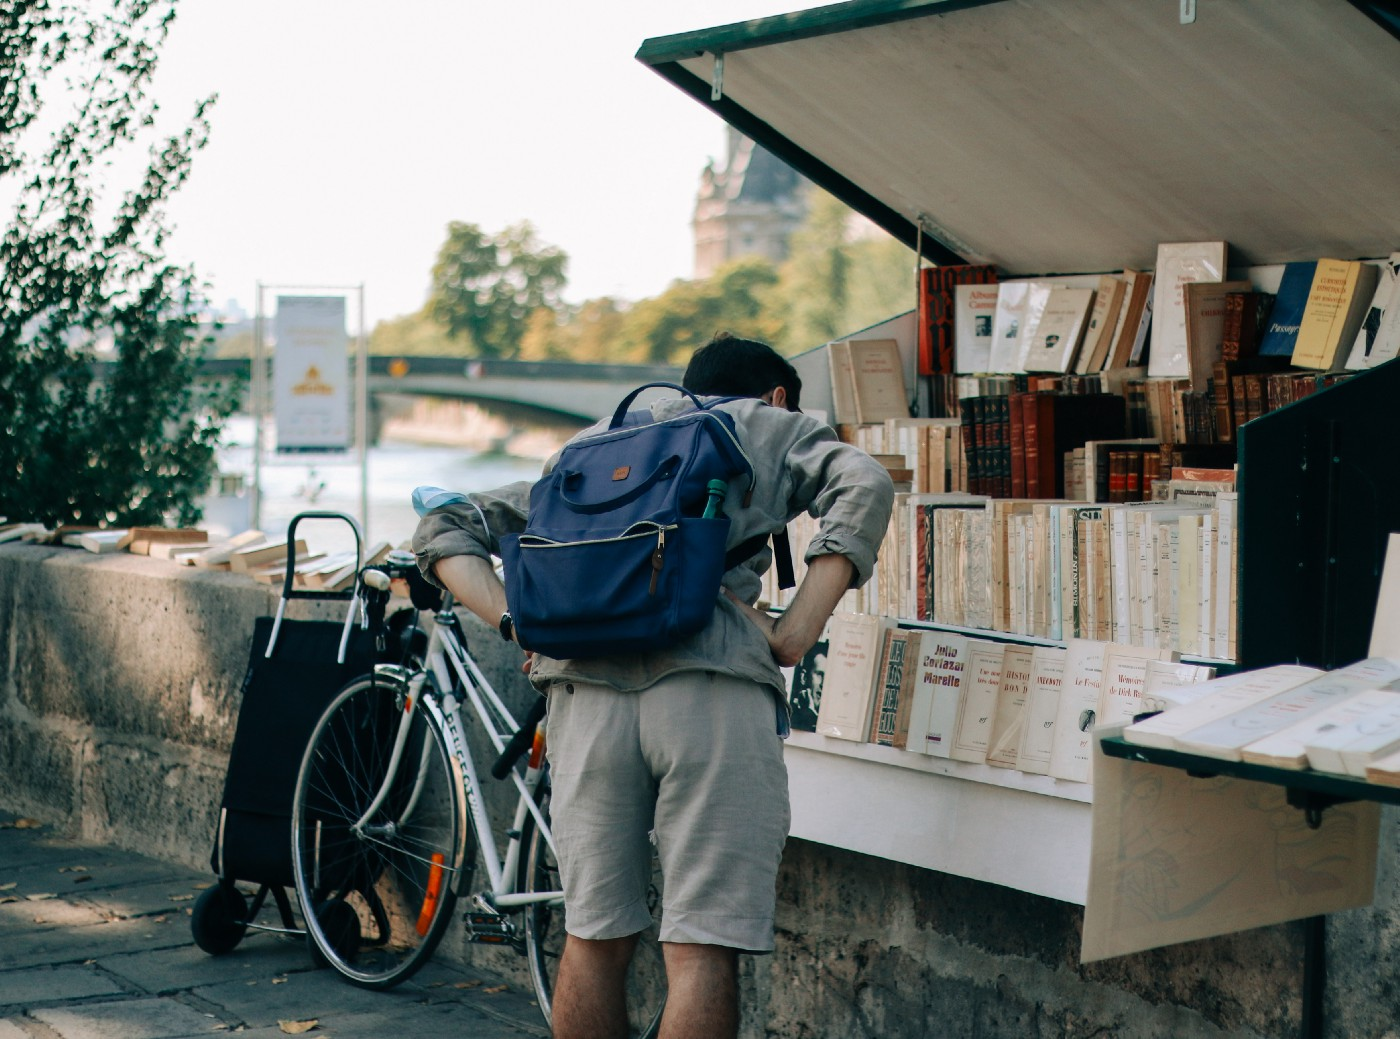 reading list. display of books at an outdoor bookseller